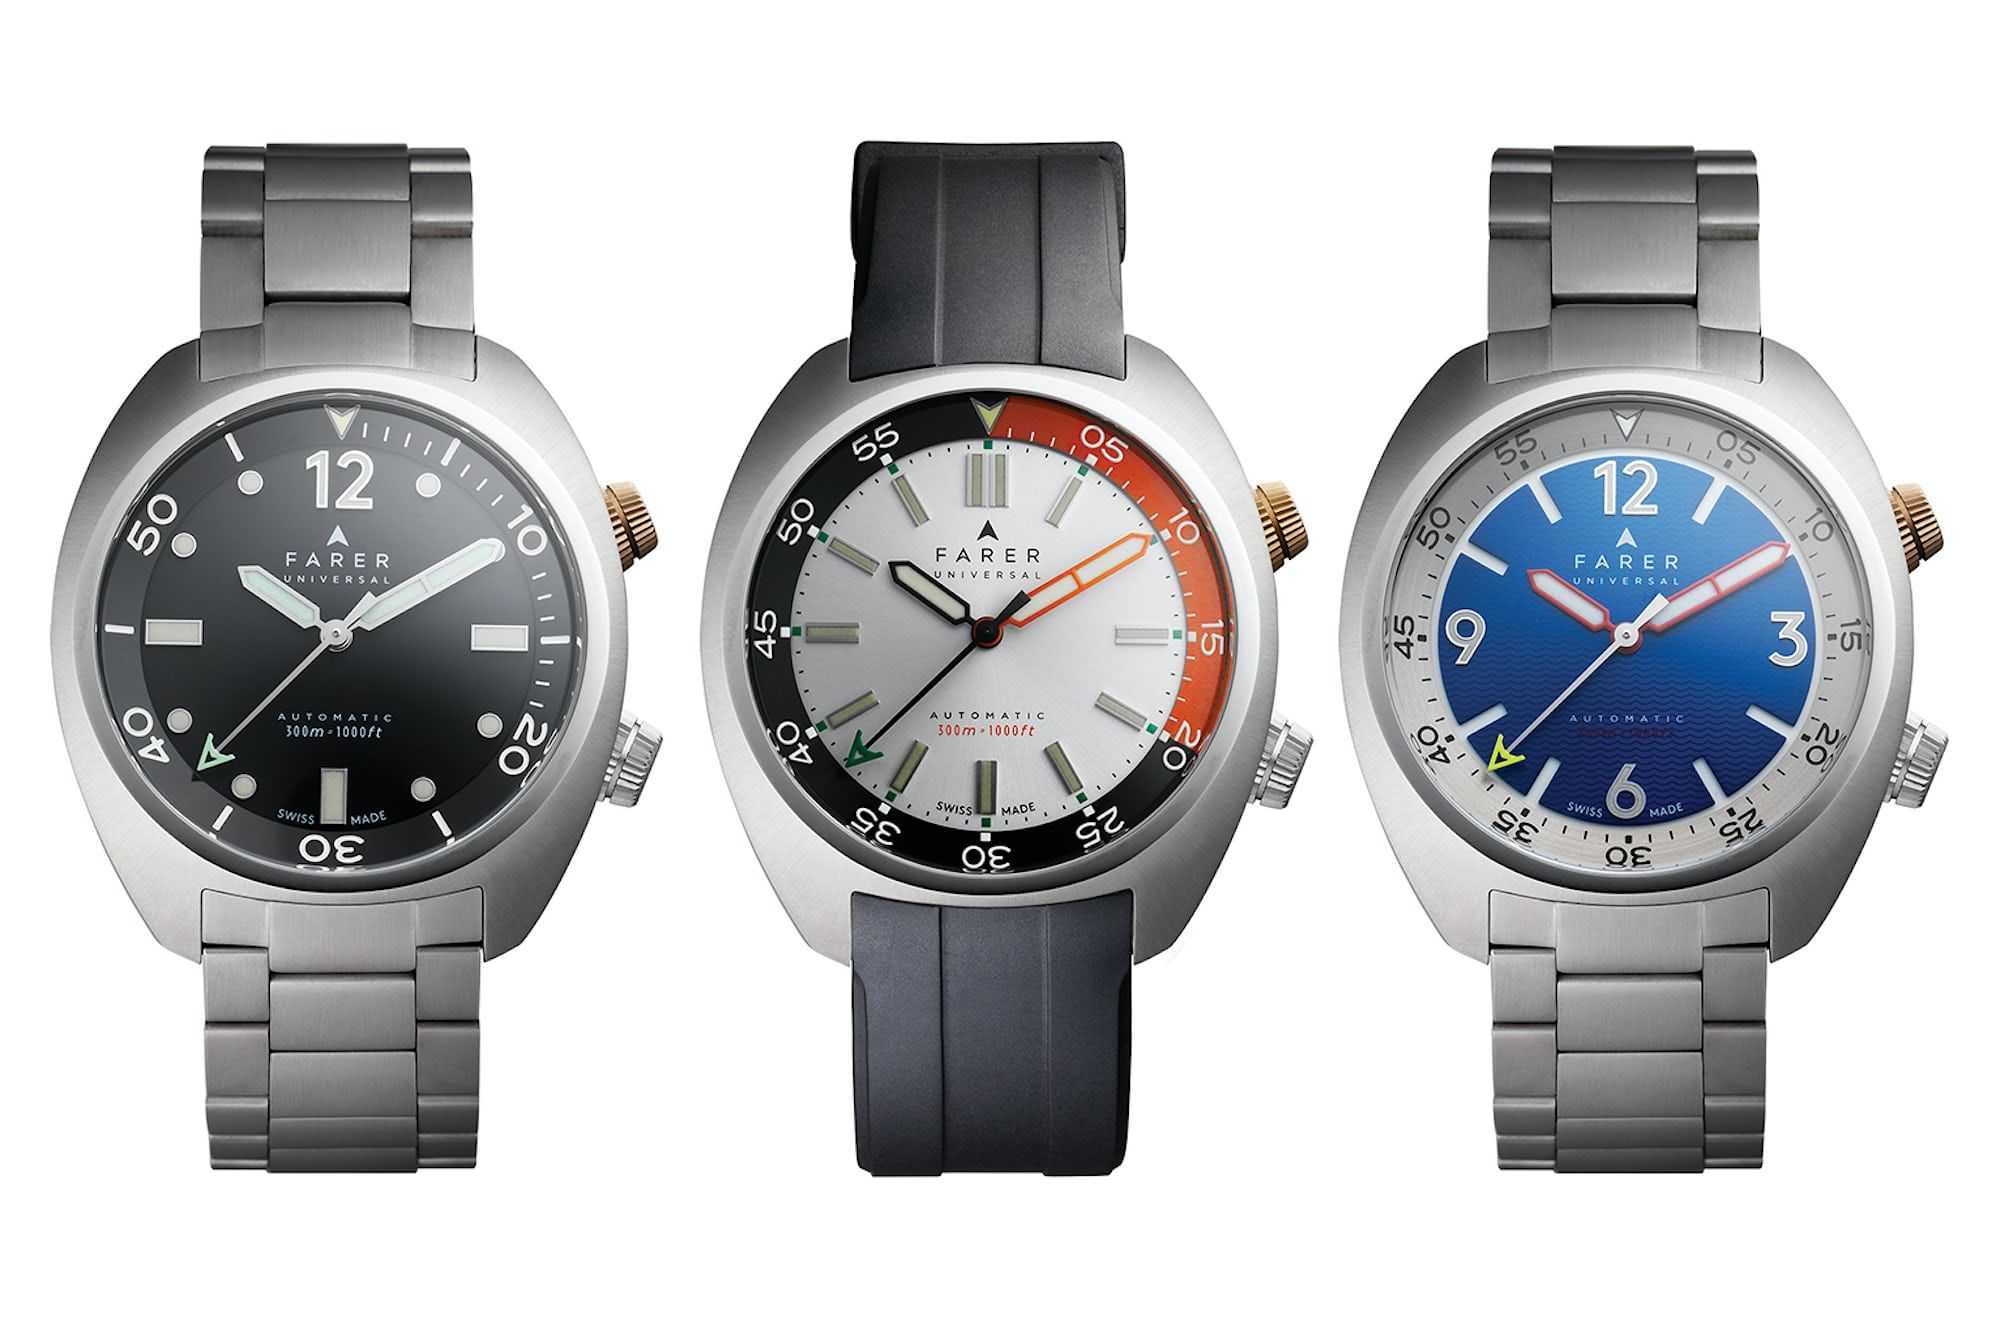 farer aqua compressor dive watches introducing: farer aqua compressor automatic dive watches Introducing: Farer Aqua Compressor Automatic Dive Watches Farer Aqua Compressor 5